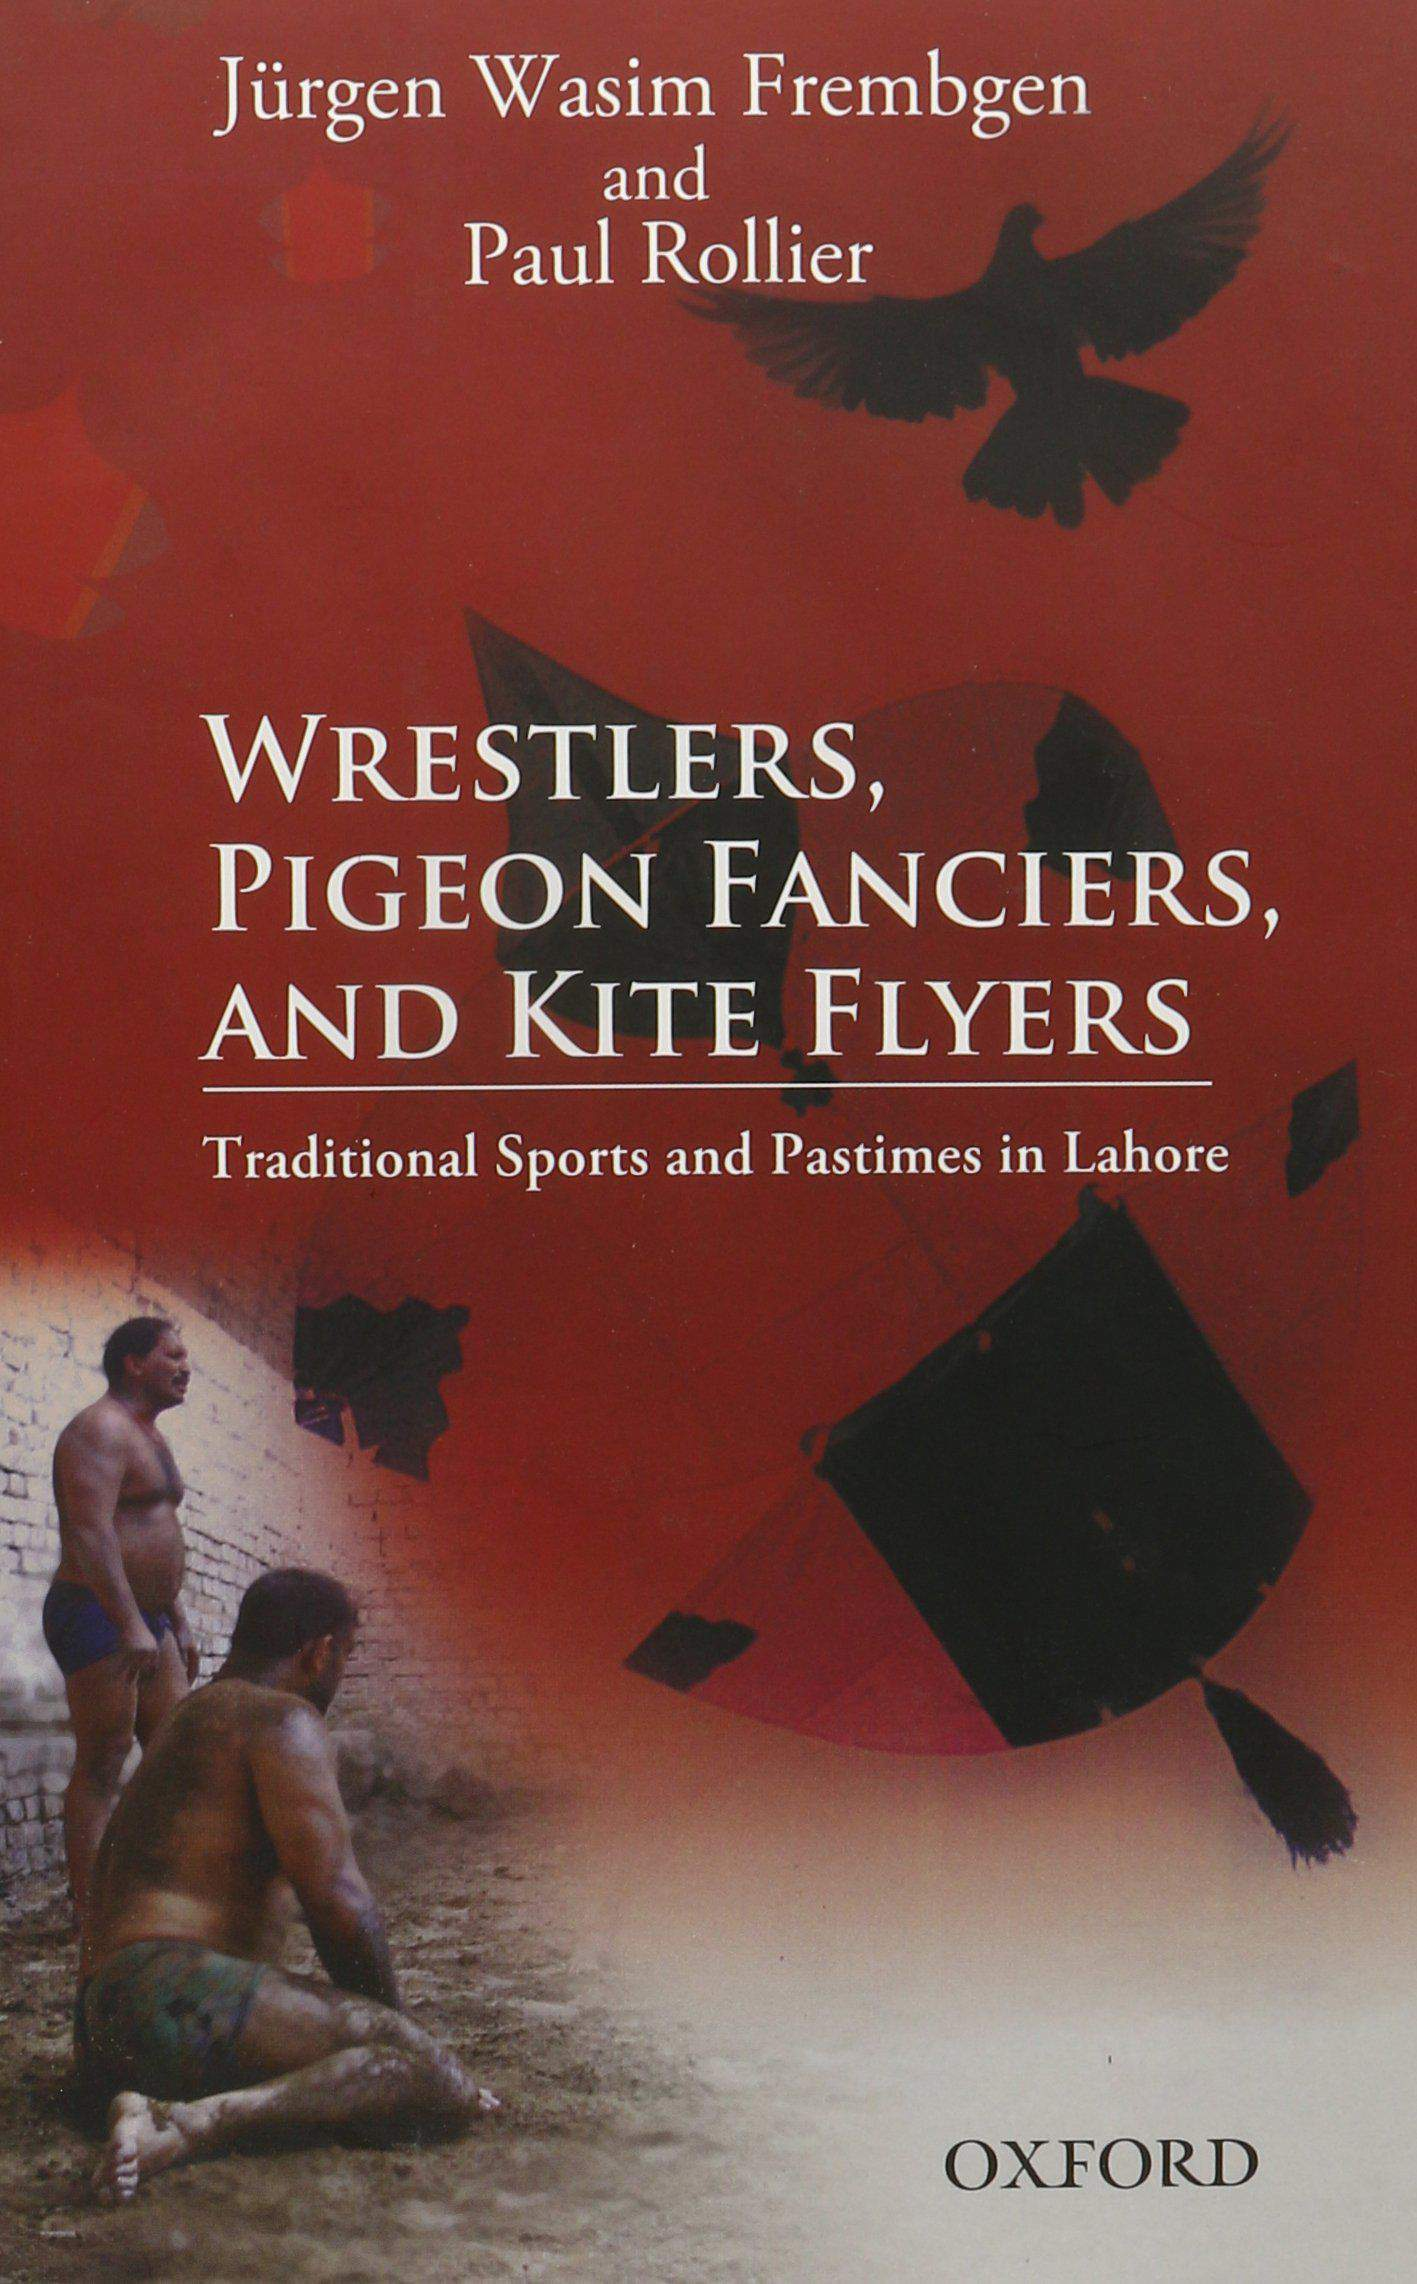 Wrestlers, Pigeon Fanciers, and Kite Flyers Traditional Sports and Pastimes in Lahore